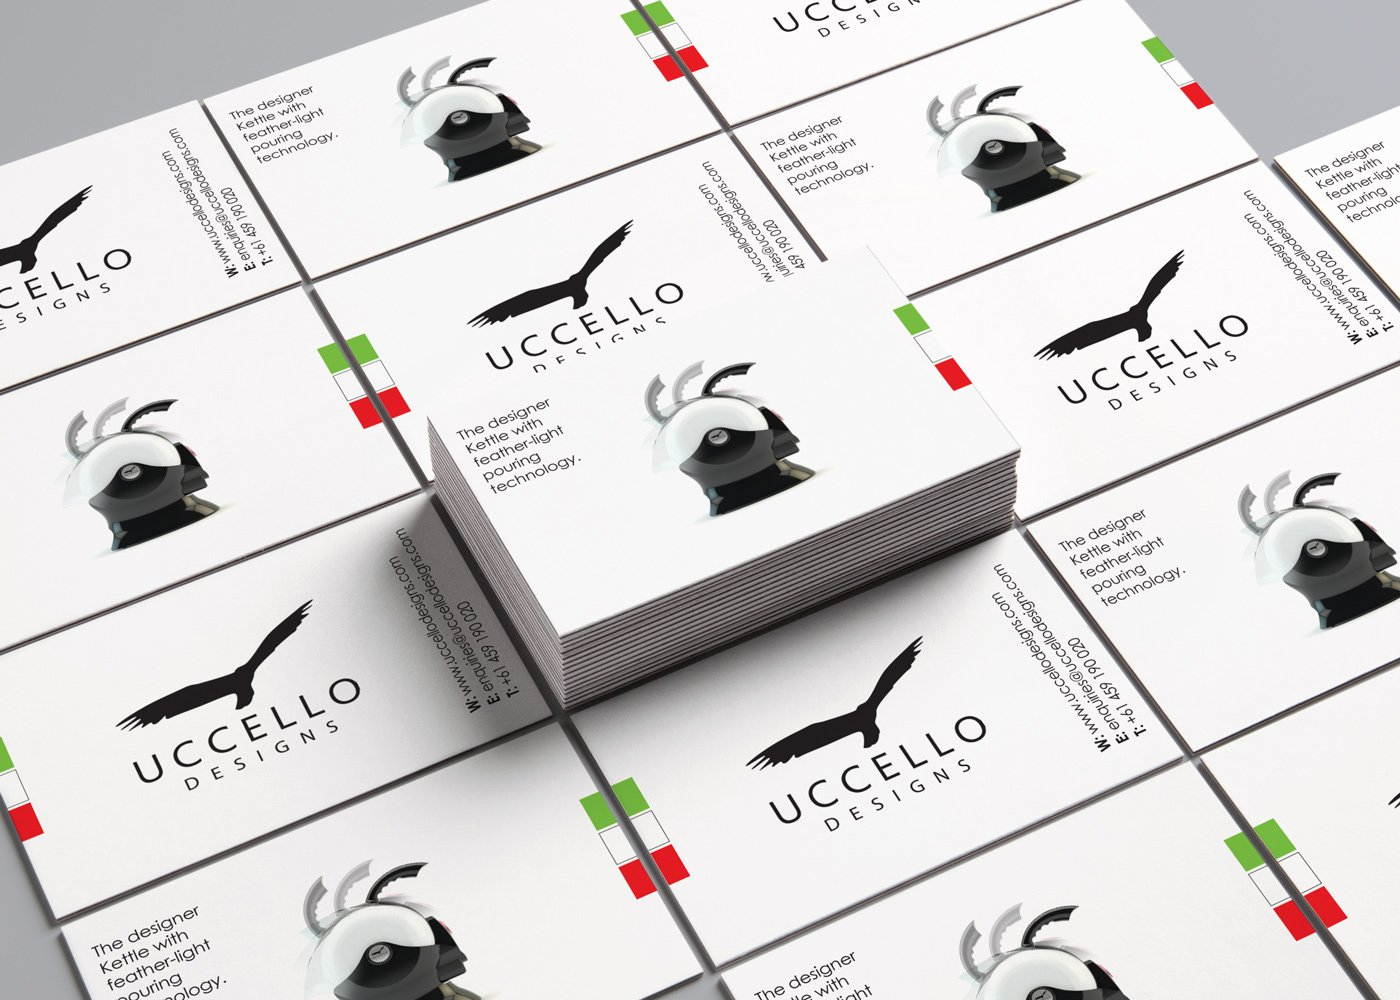 Uccello | User Guide Cards